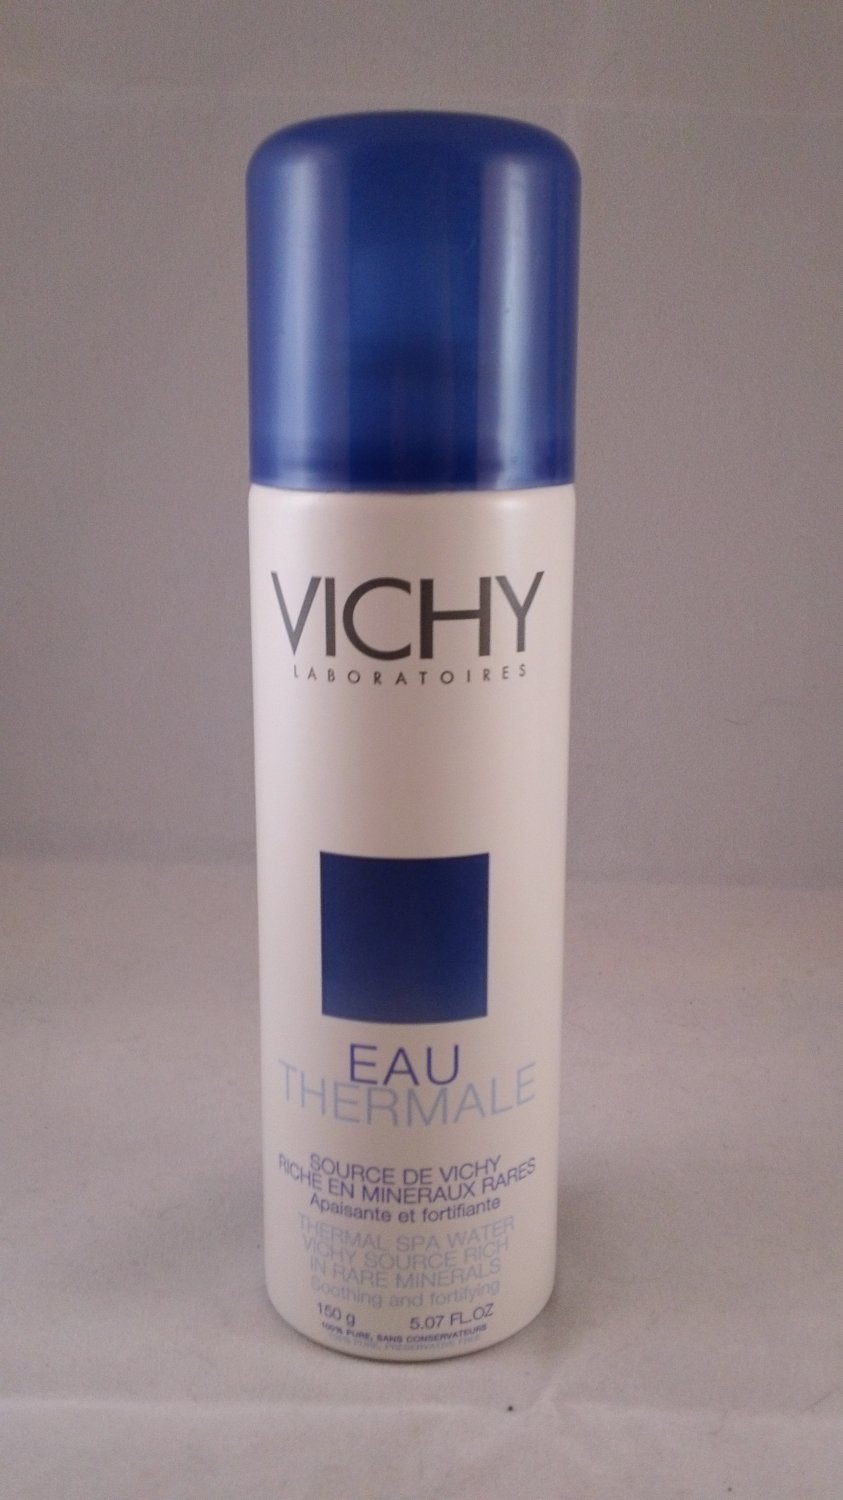 Vichy Laboratories Eau Thermale Thermal Spa Water